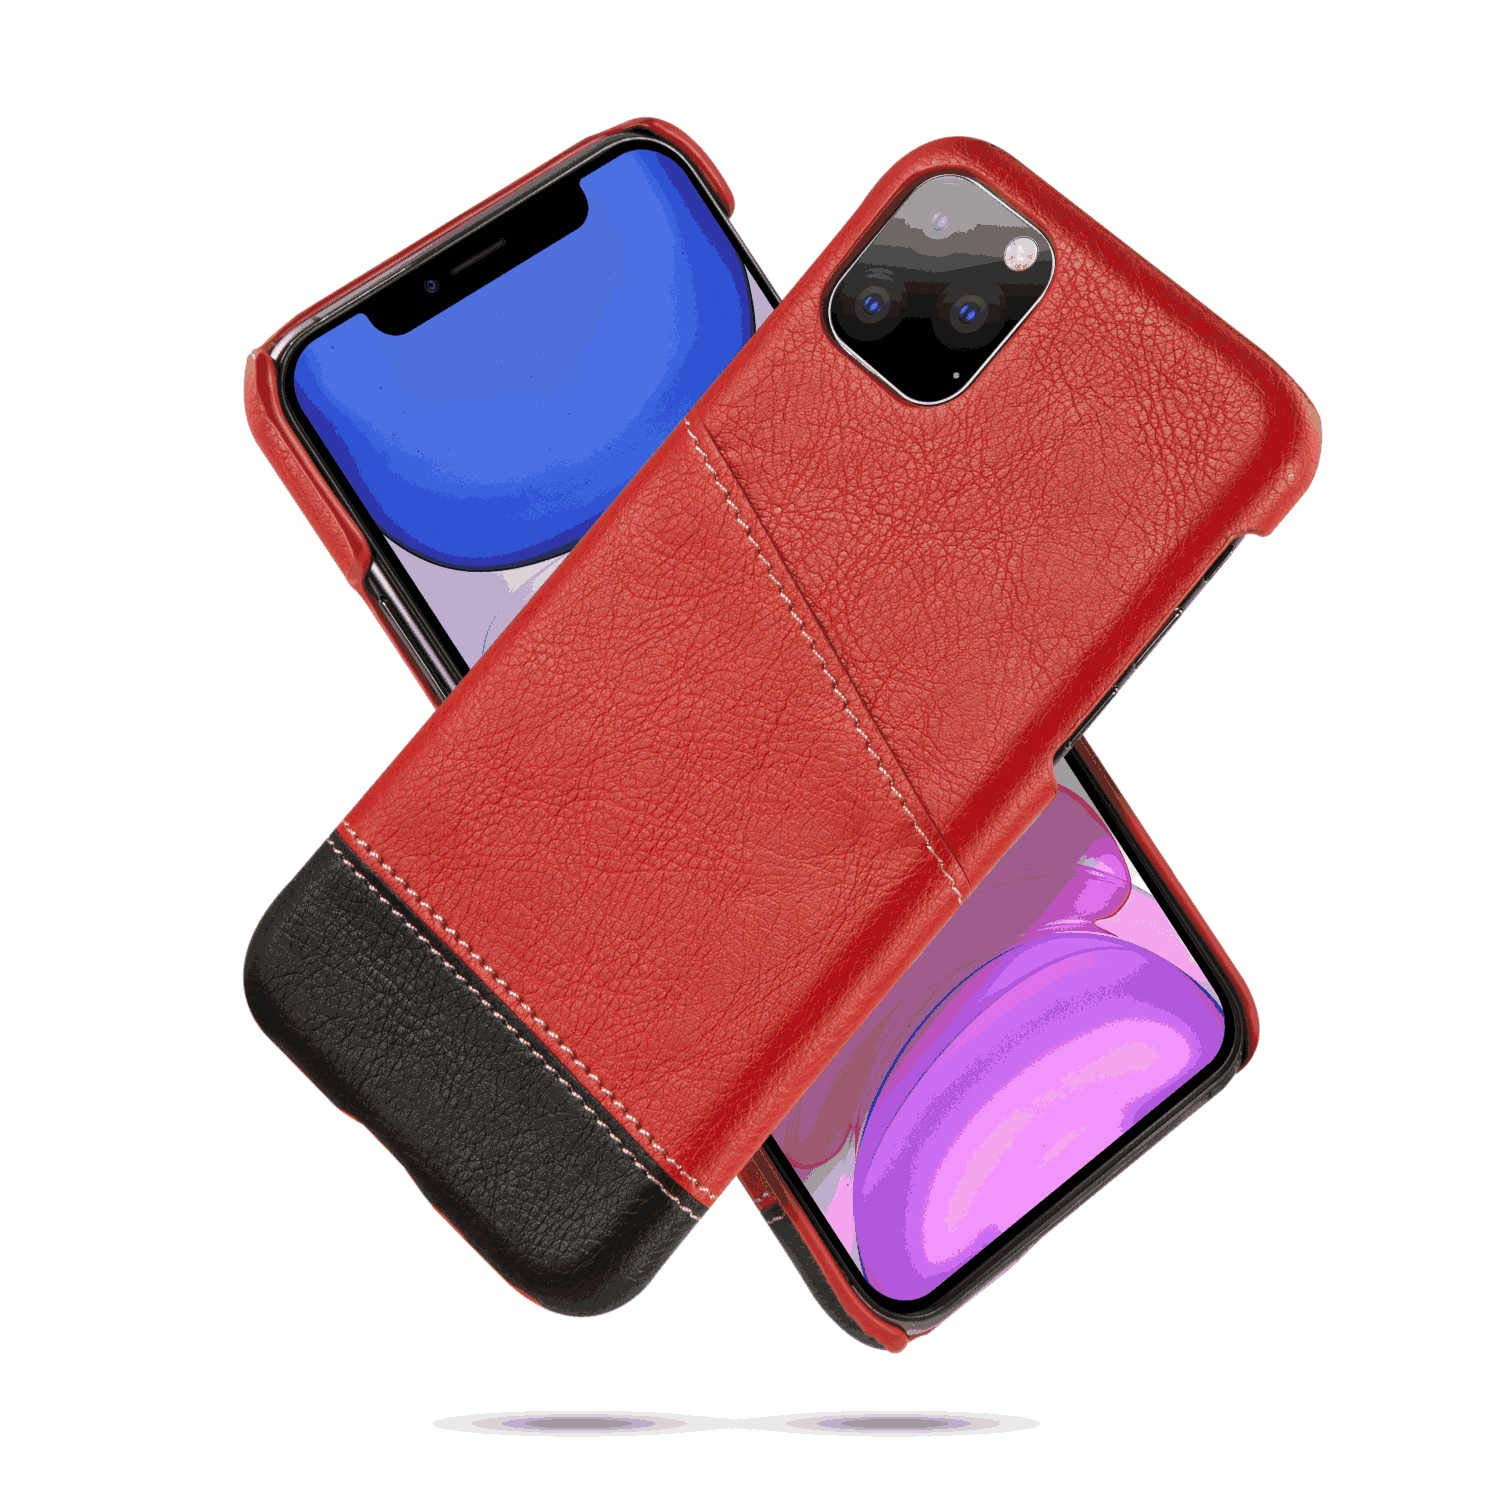 Leather Flip Case Fit for iPhone XS, red Wallet Cover for iPhone XS